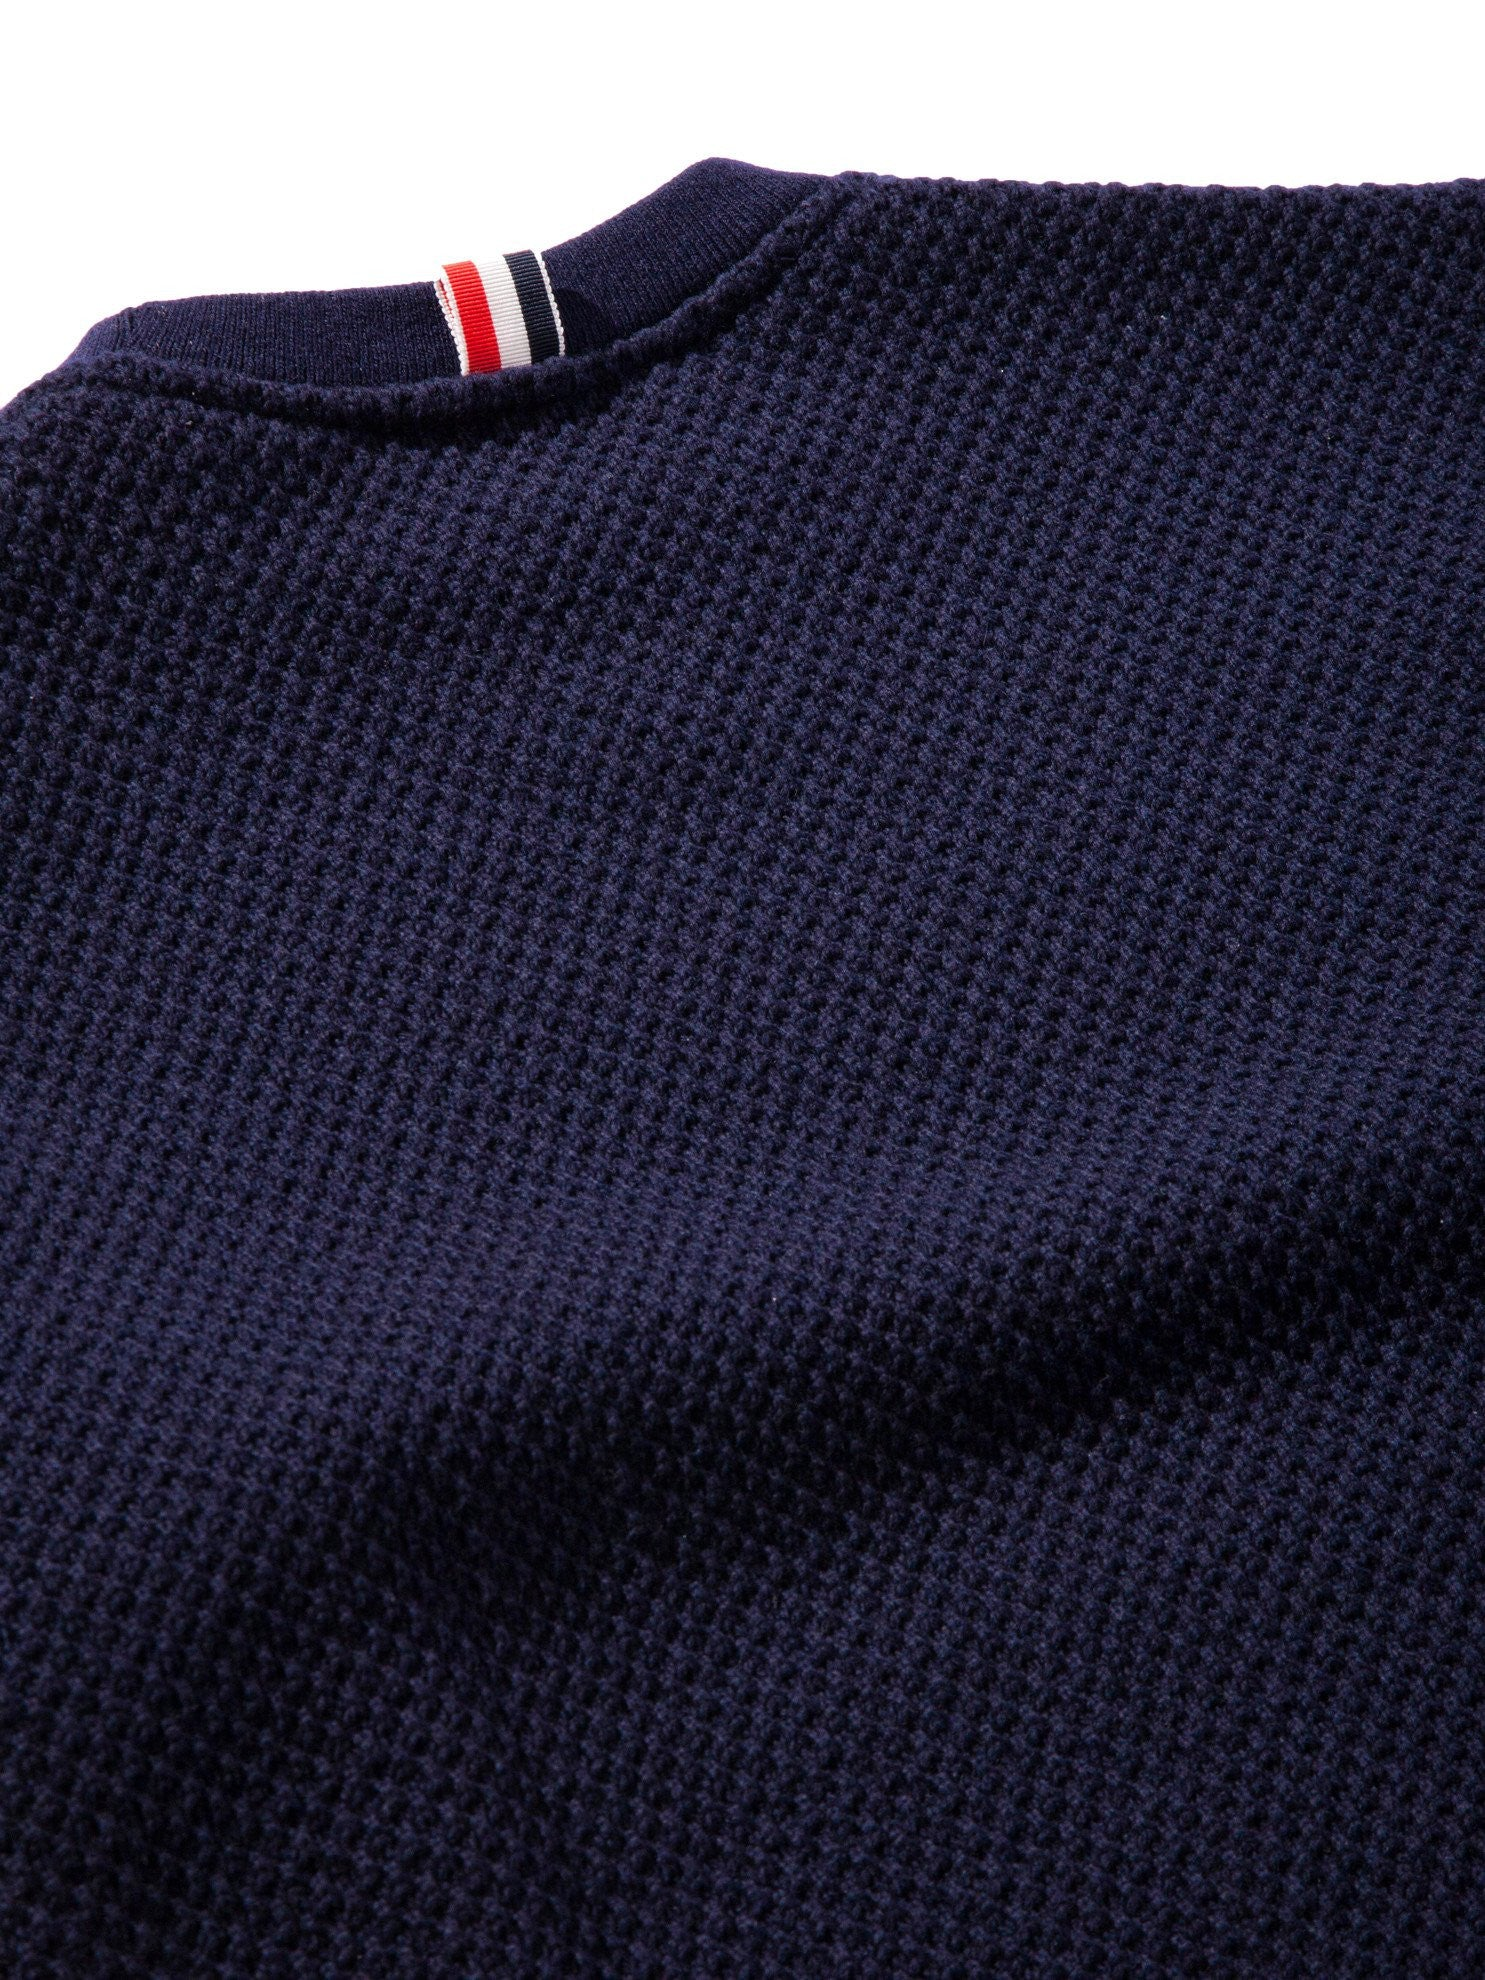 Navy Wide Shoulder Crew Neck Sweatshirt (Hand Embroidered 4 Bar Stripe In Chunky Pique) 10